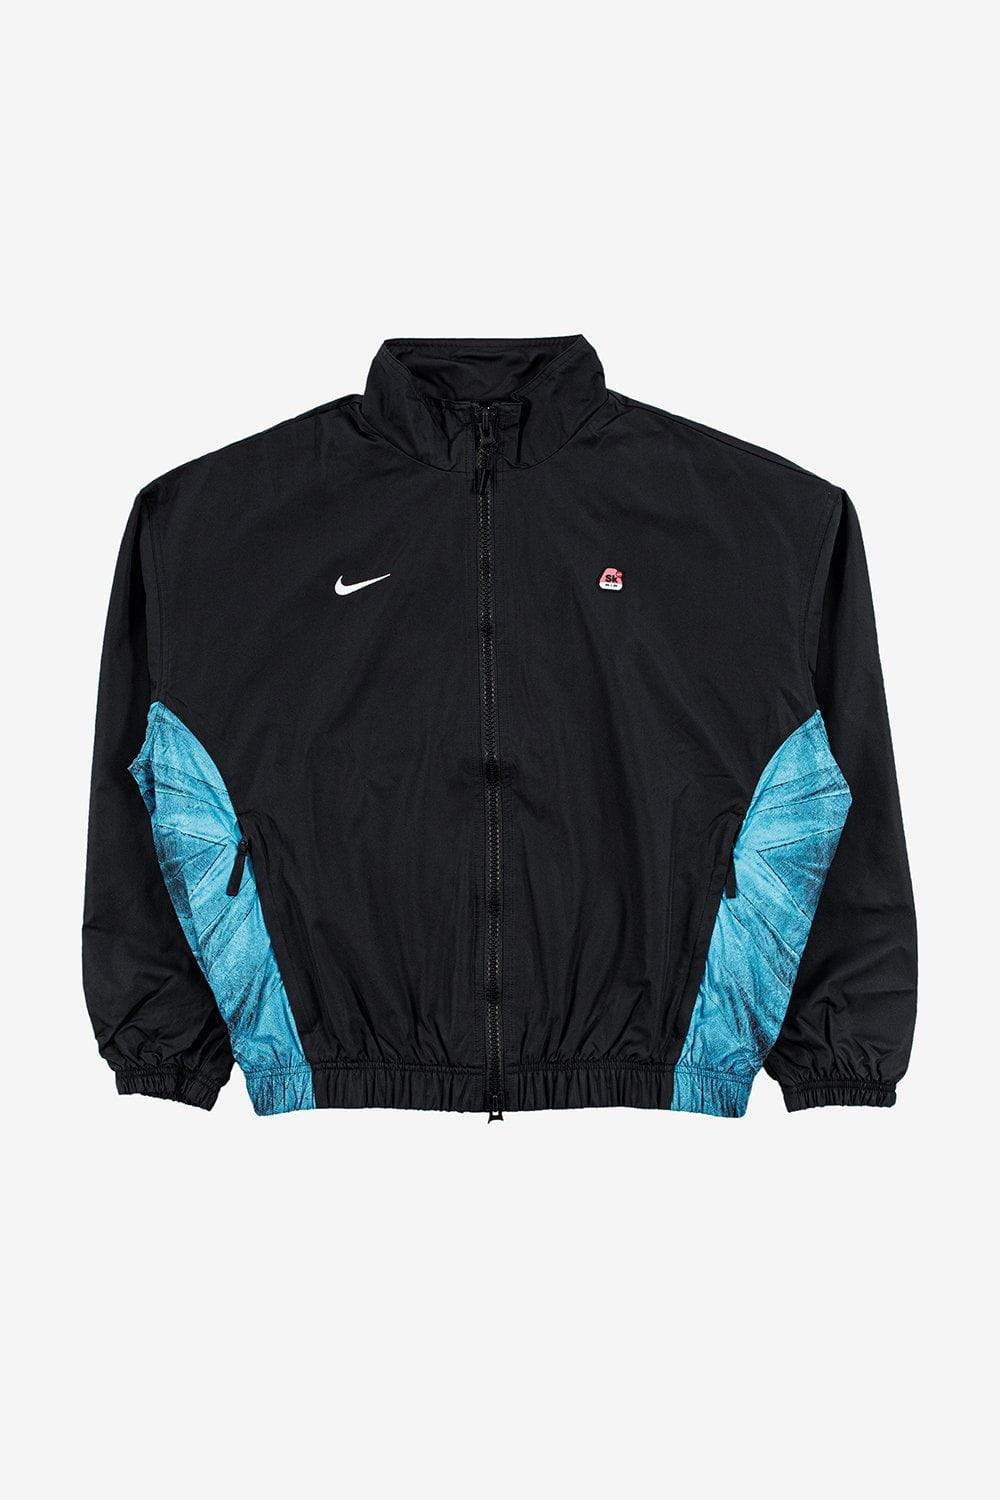 Nike Apparel Nike x Skepta Track Jacket Black